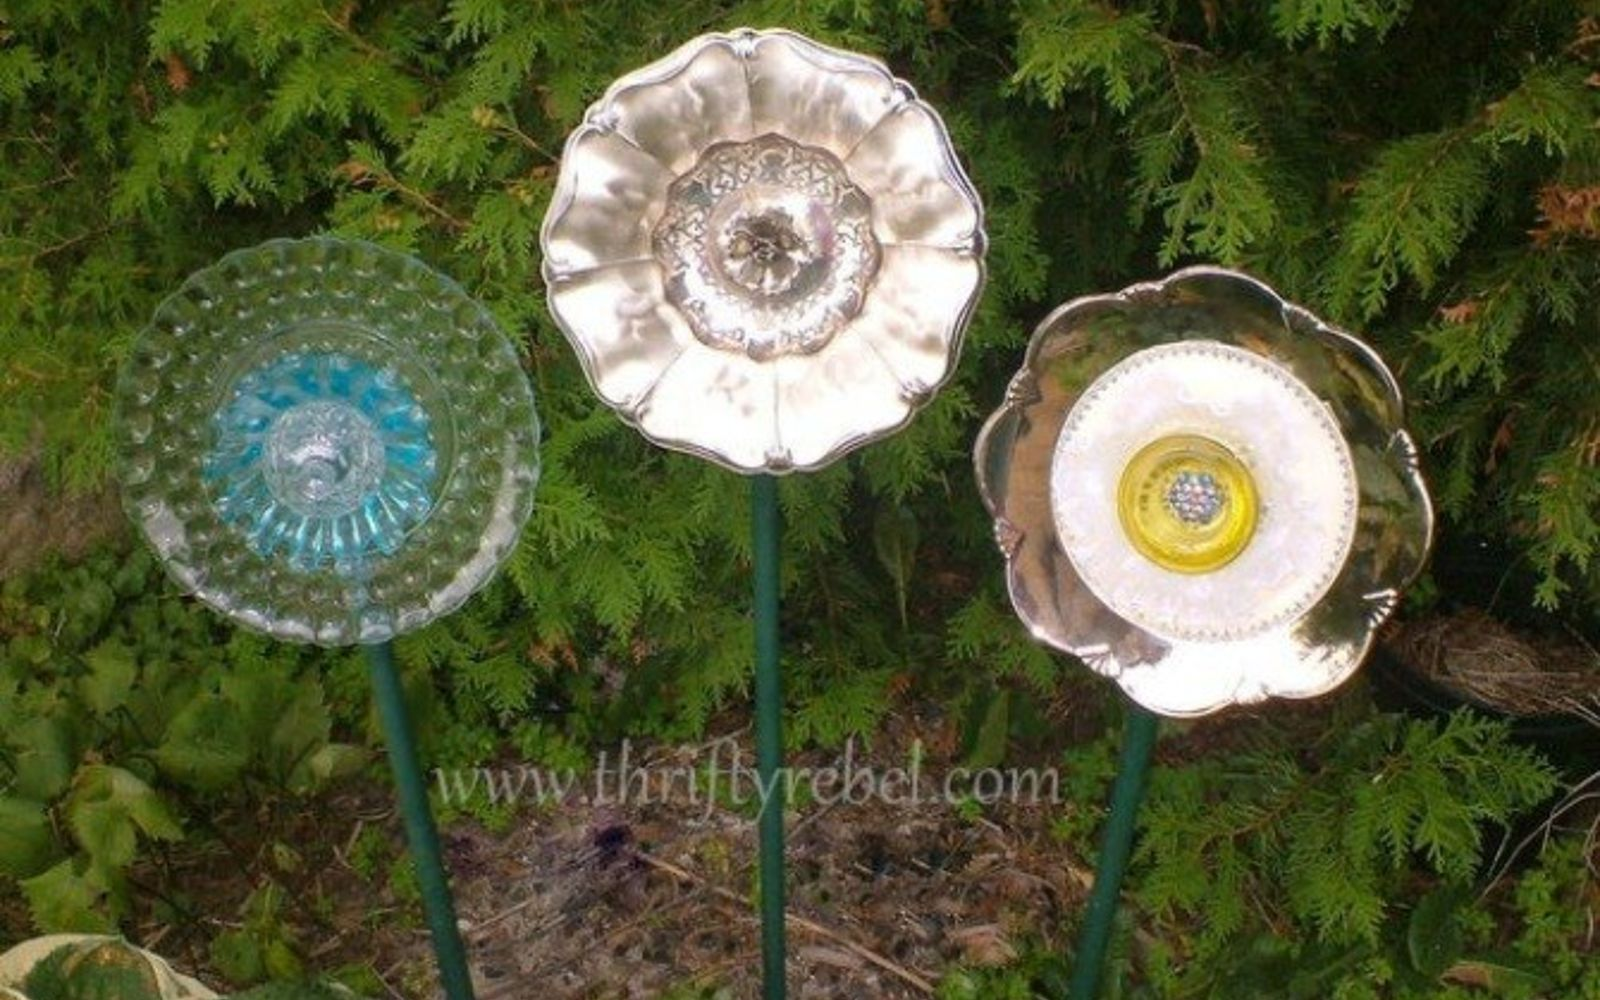 s 17 reasons to drop everything and buy cheap thrift store dishes, crafts, repurposing upcycling, Make large glass flowers for your garden